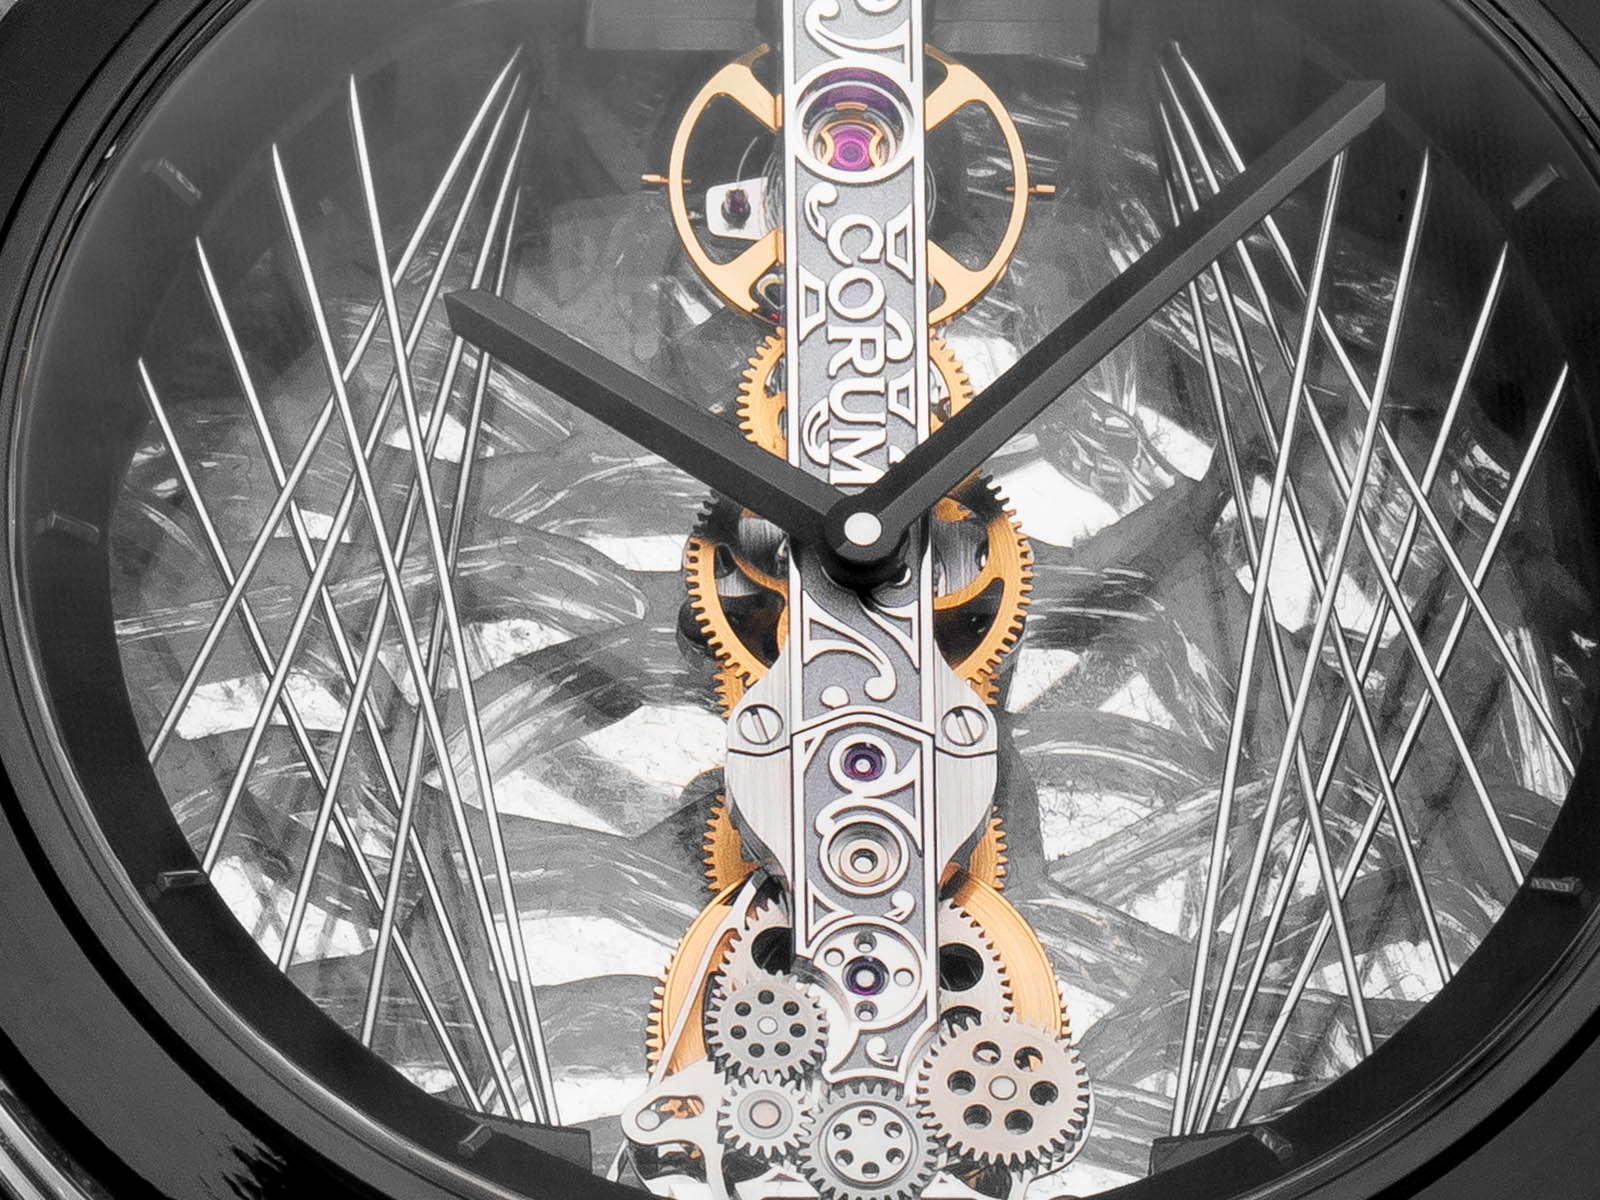 b113-03952-corum-golden-bridge-round-43-art-deco-2.jpg